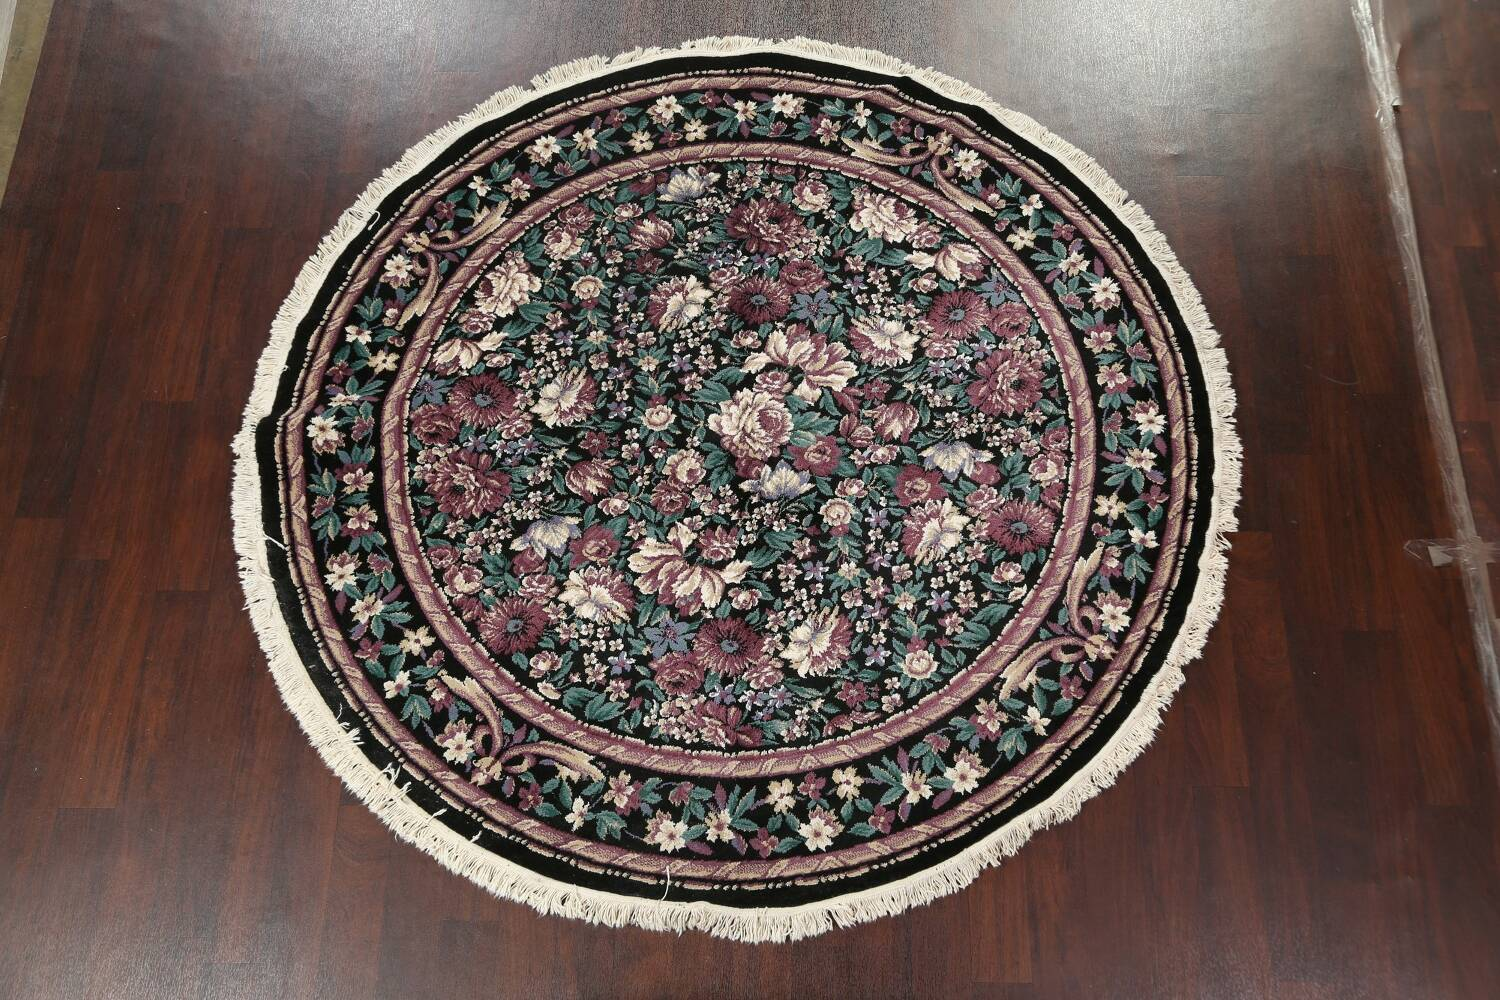 Floral Aubusson Round Area Rug 8x8 image 11